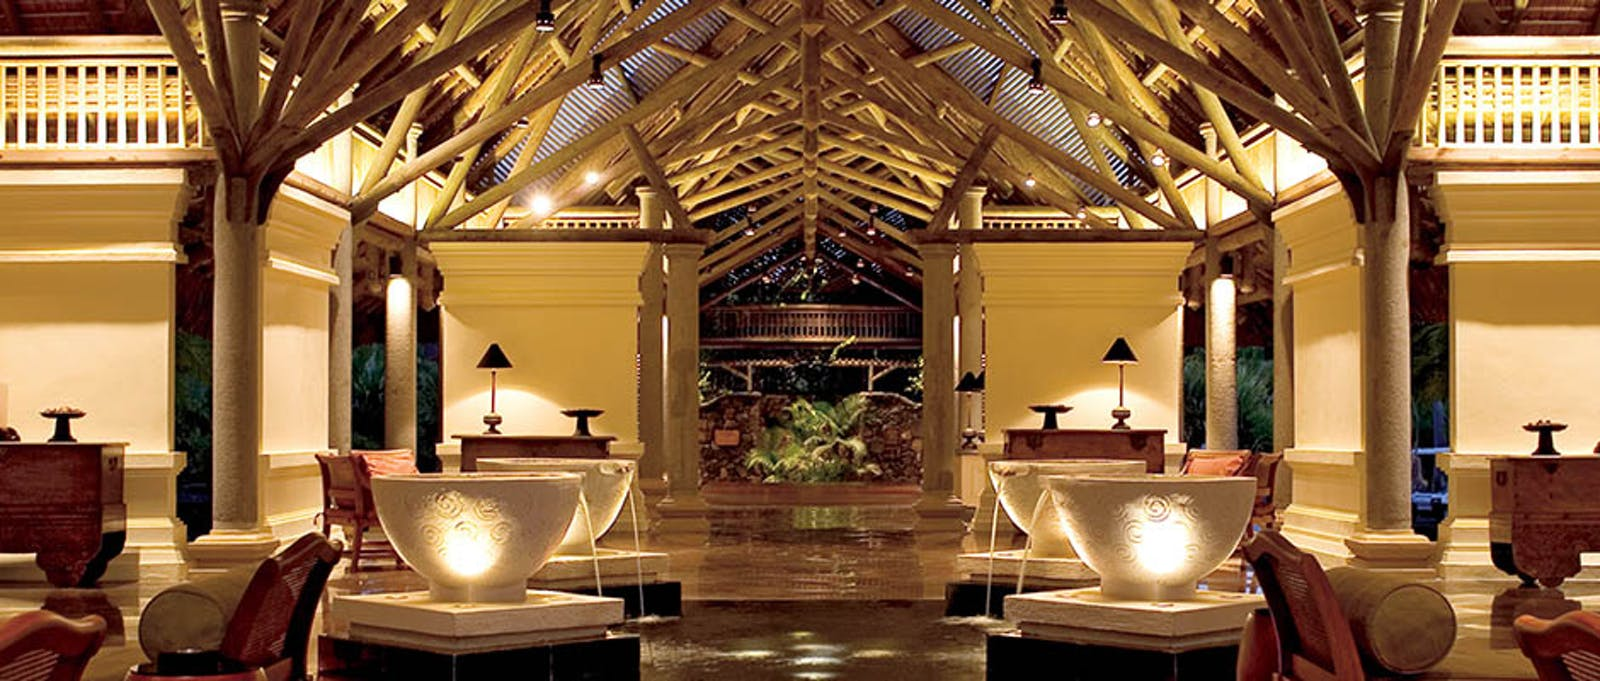 Lobby at Constance Prince Maurice, Mauritius